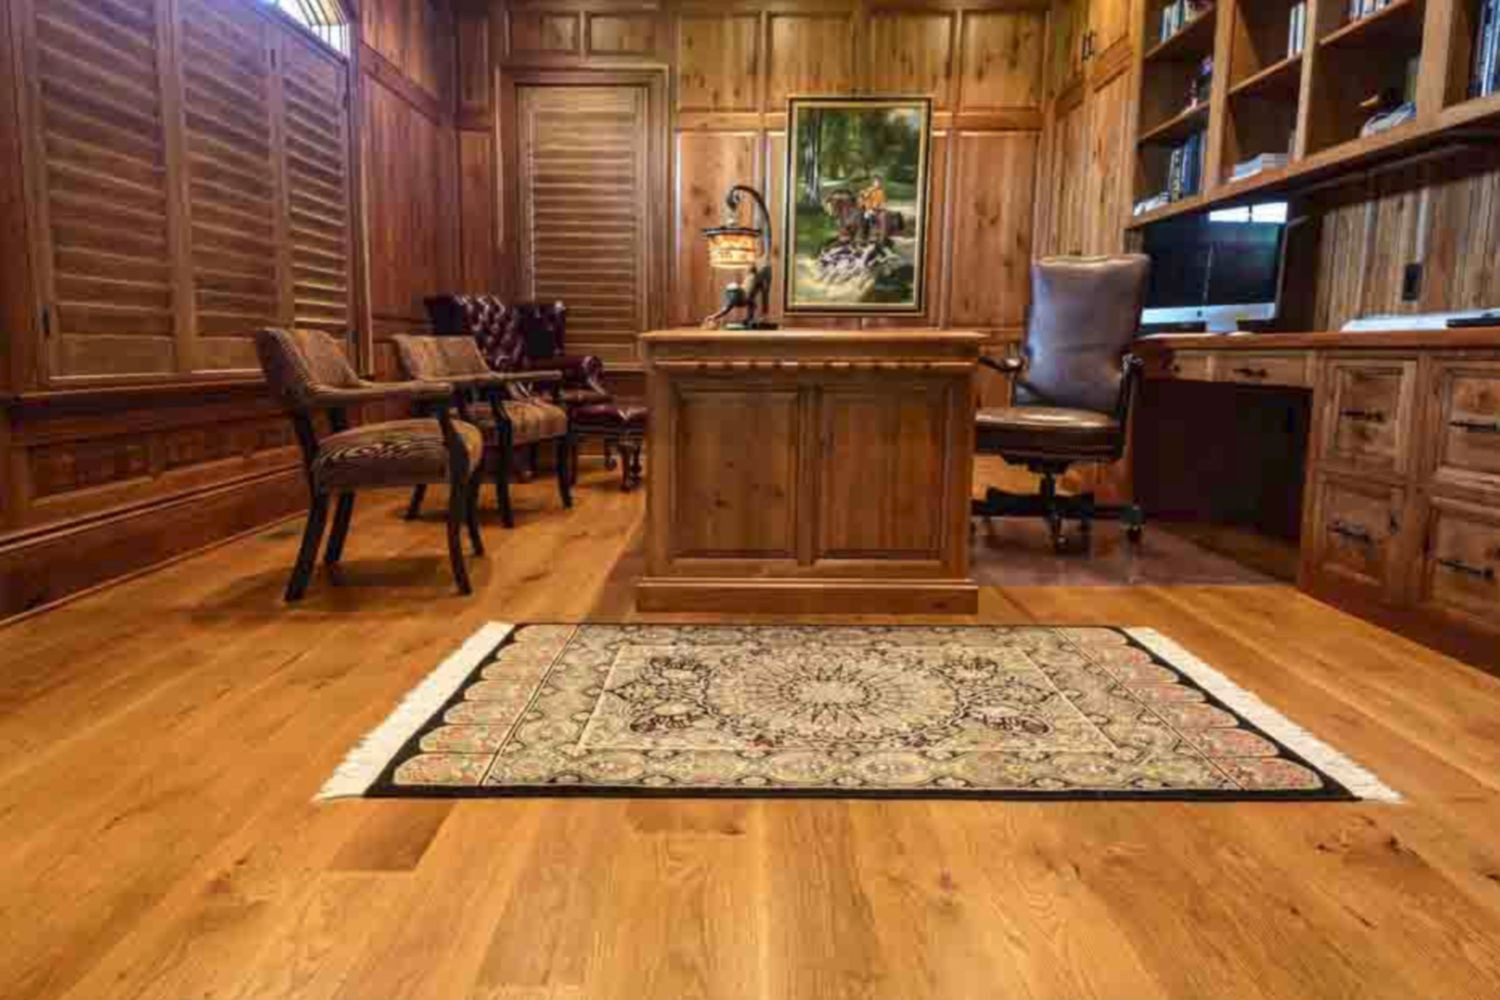 Bruce solid Oak Hardwood Flooring Reviews Of top 5 Brands for solid Hardwood Flooring within the Woods Company White Oak 1500 X 1000 56a49f6d5f9b58b7d0d7e1db